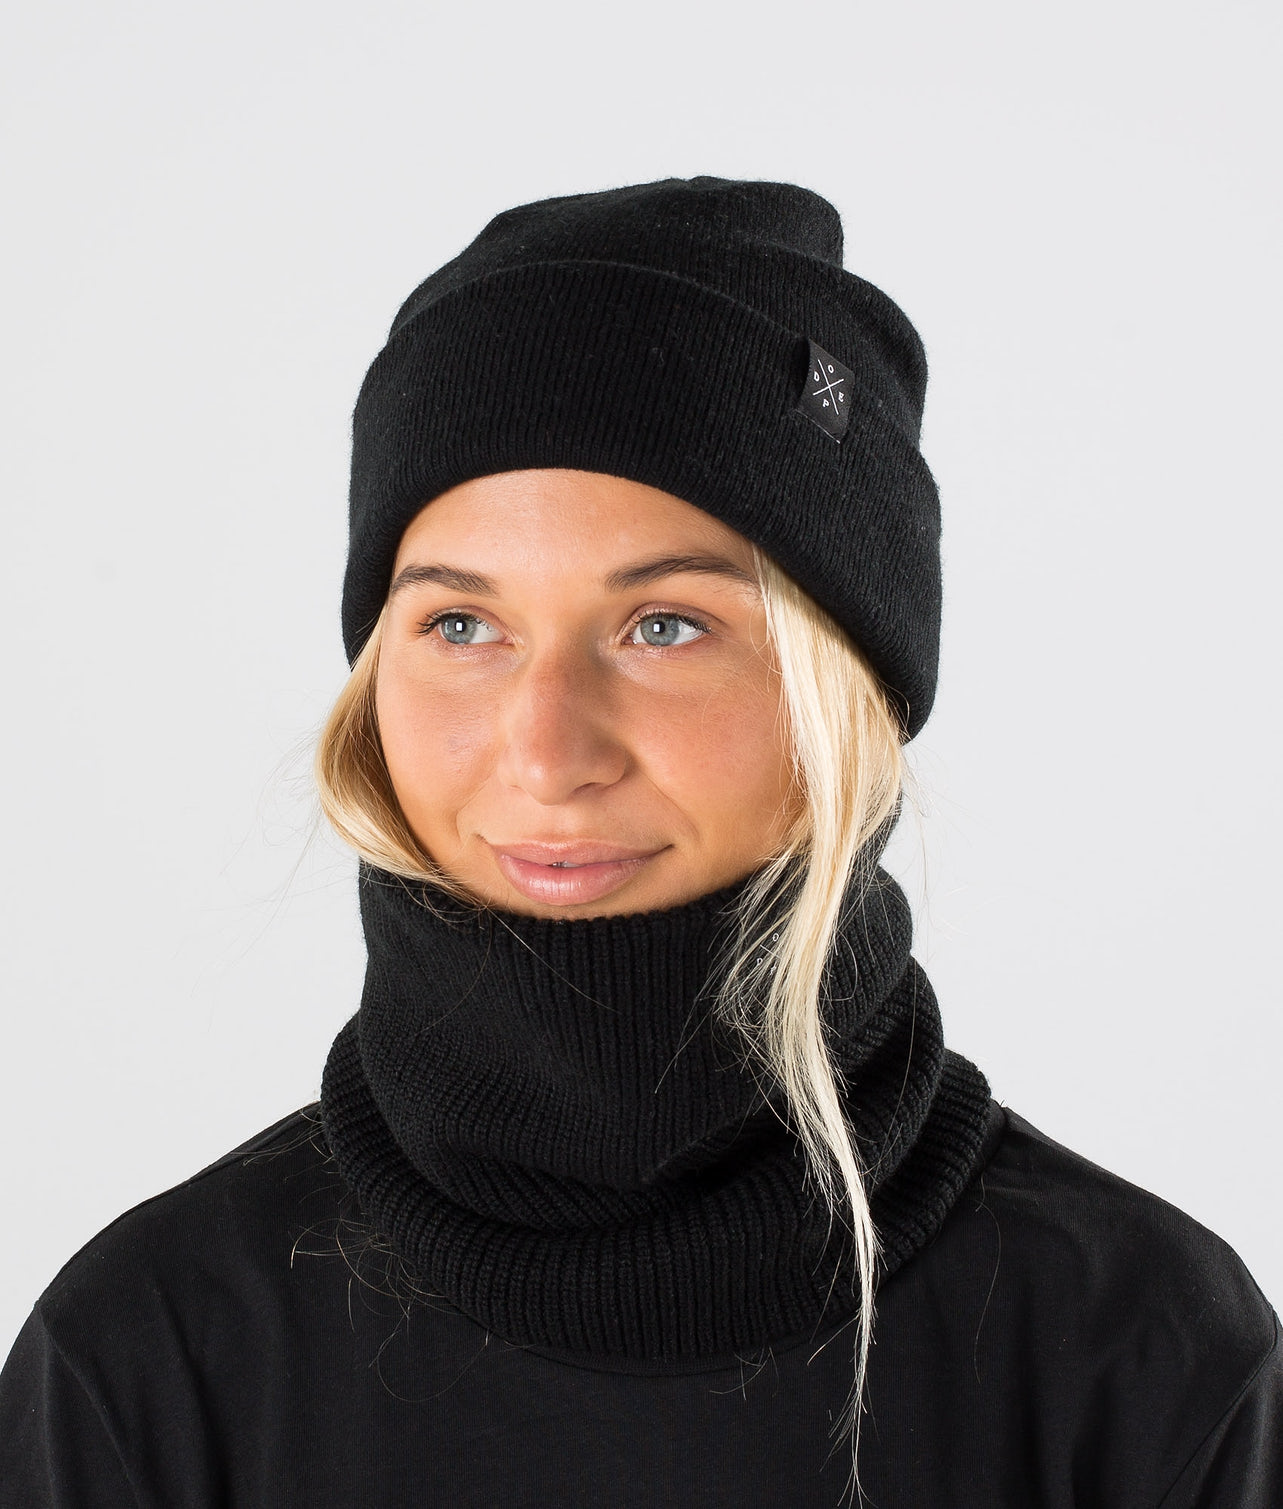 Buy 2X-UP Knitted Facemask from Dope at Ridestore.com - Always free shipping, free returns and 30 days money back guarantee